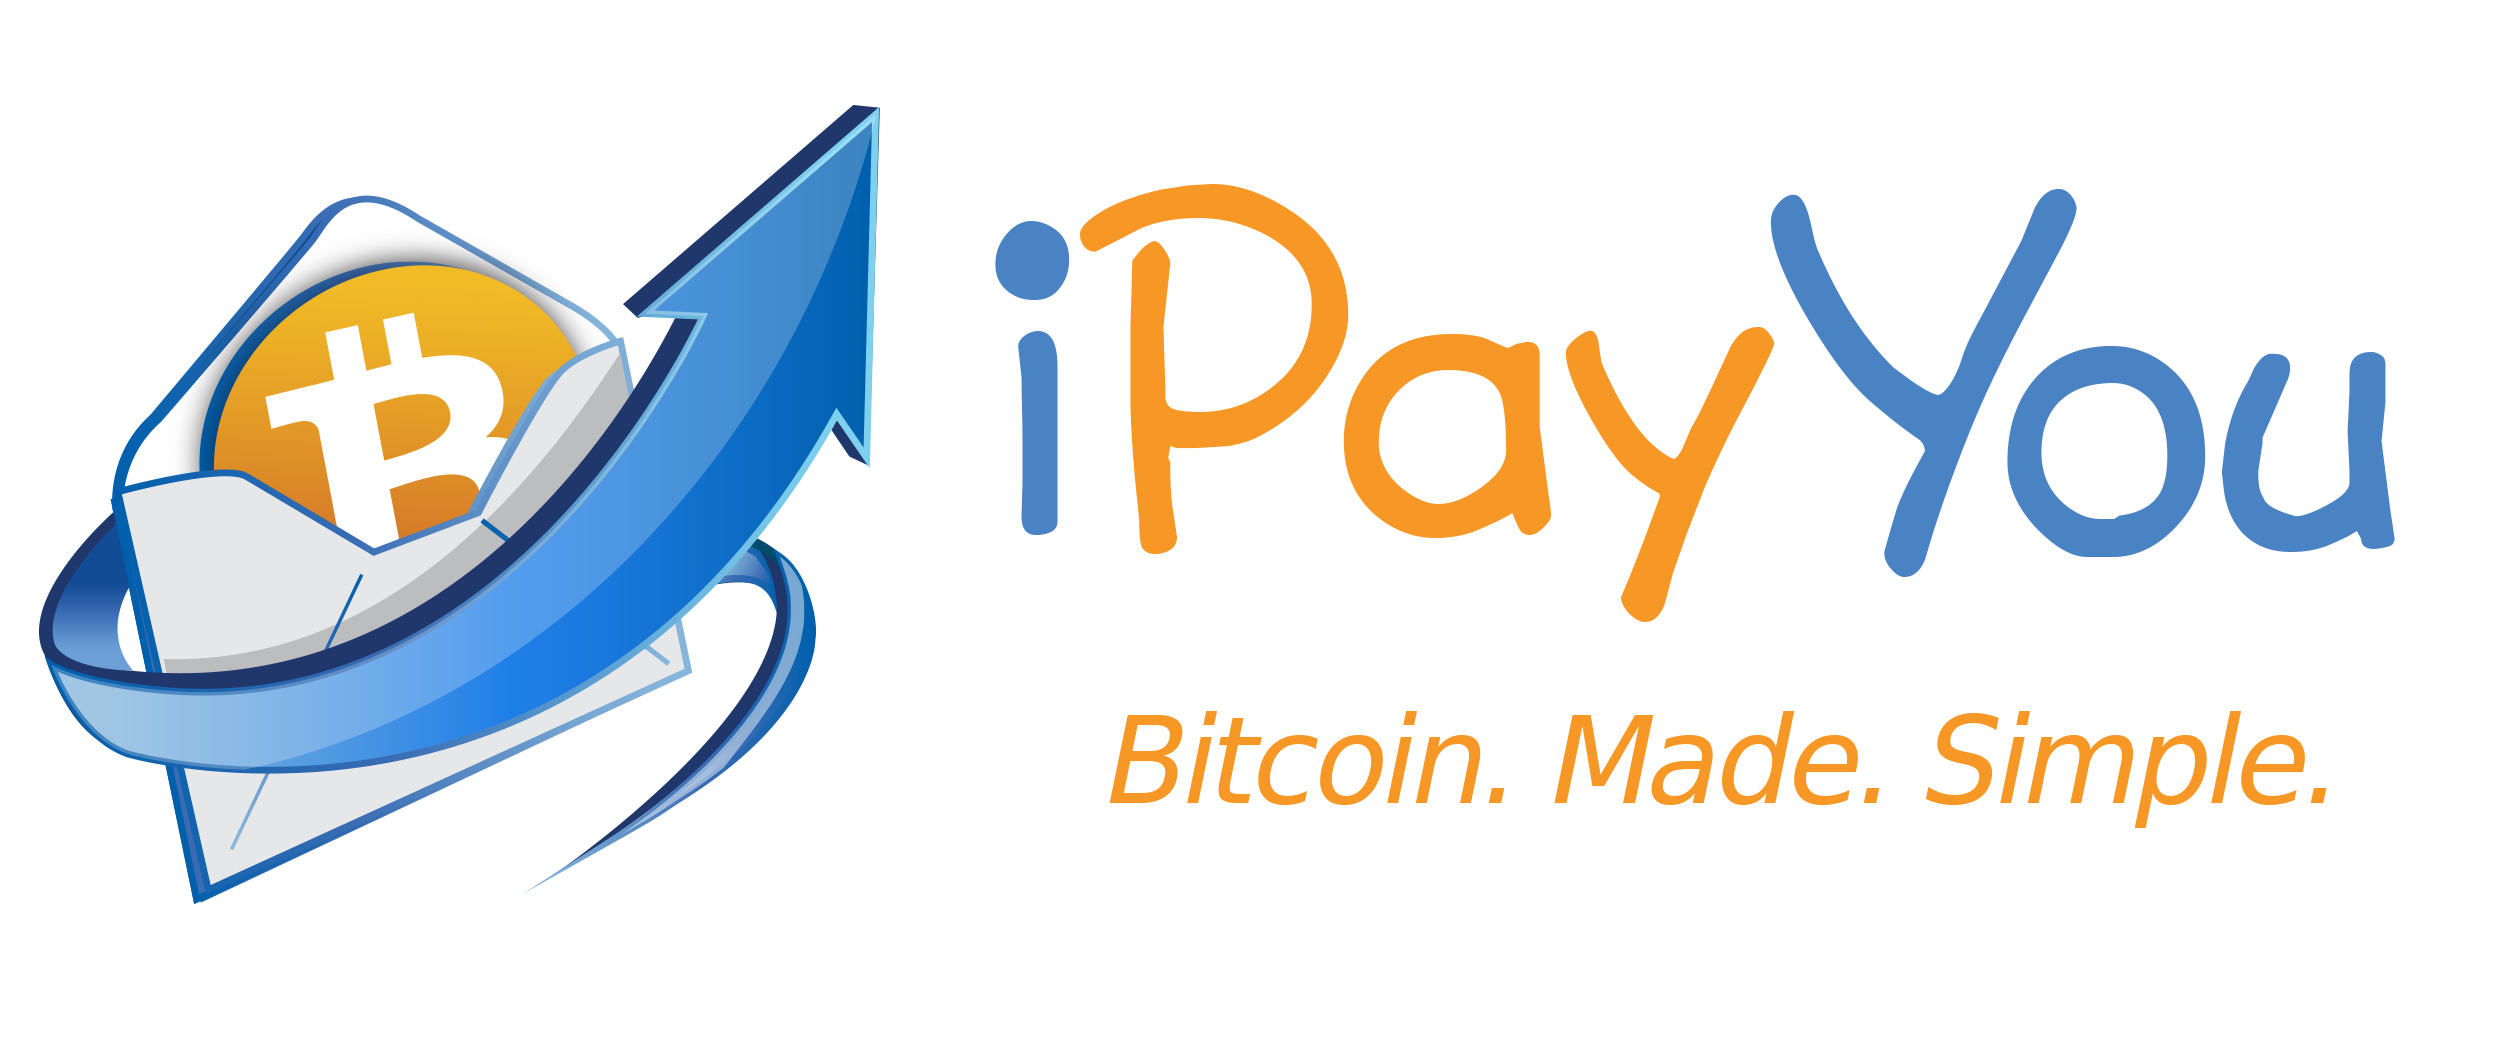 Bitcoin startup ipayyou launches pay by twitter service for kavner believes the twitter tool will have a wide range of applications from charitable donations to peer to peer payments even political contributions ccuart Choice Image